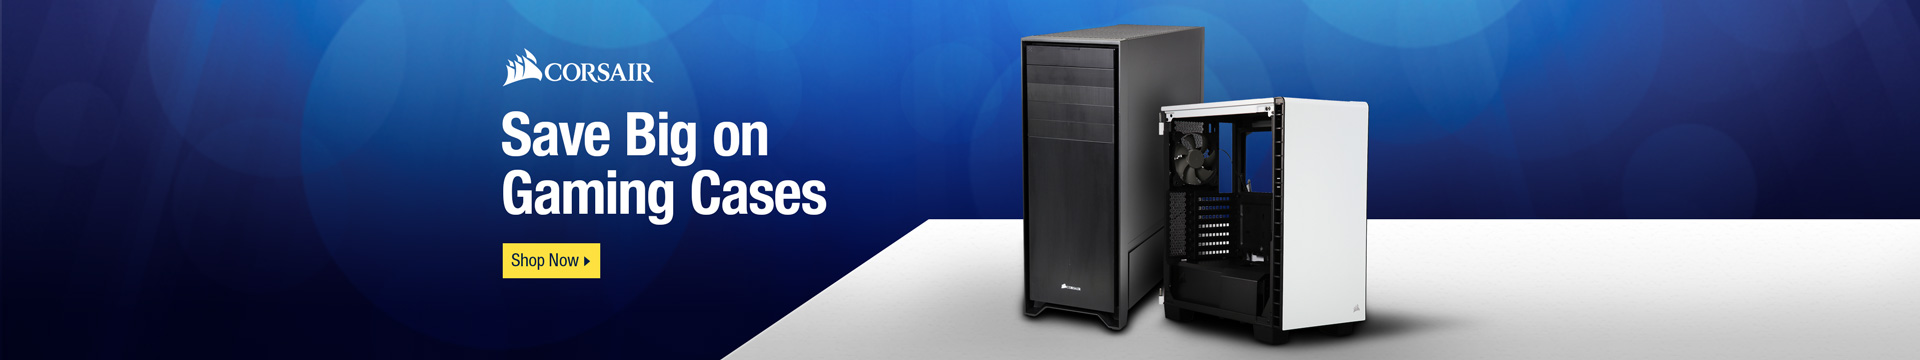 Save Big on Gaming Cases